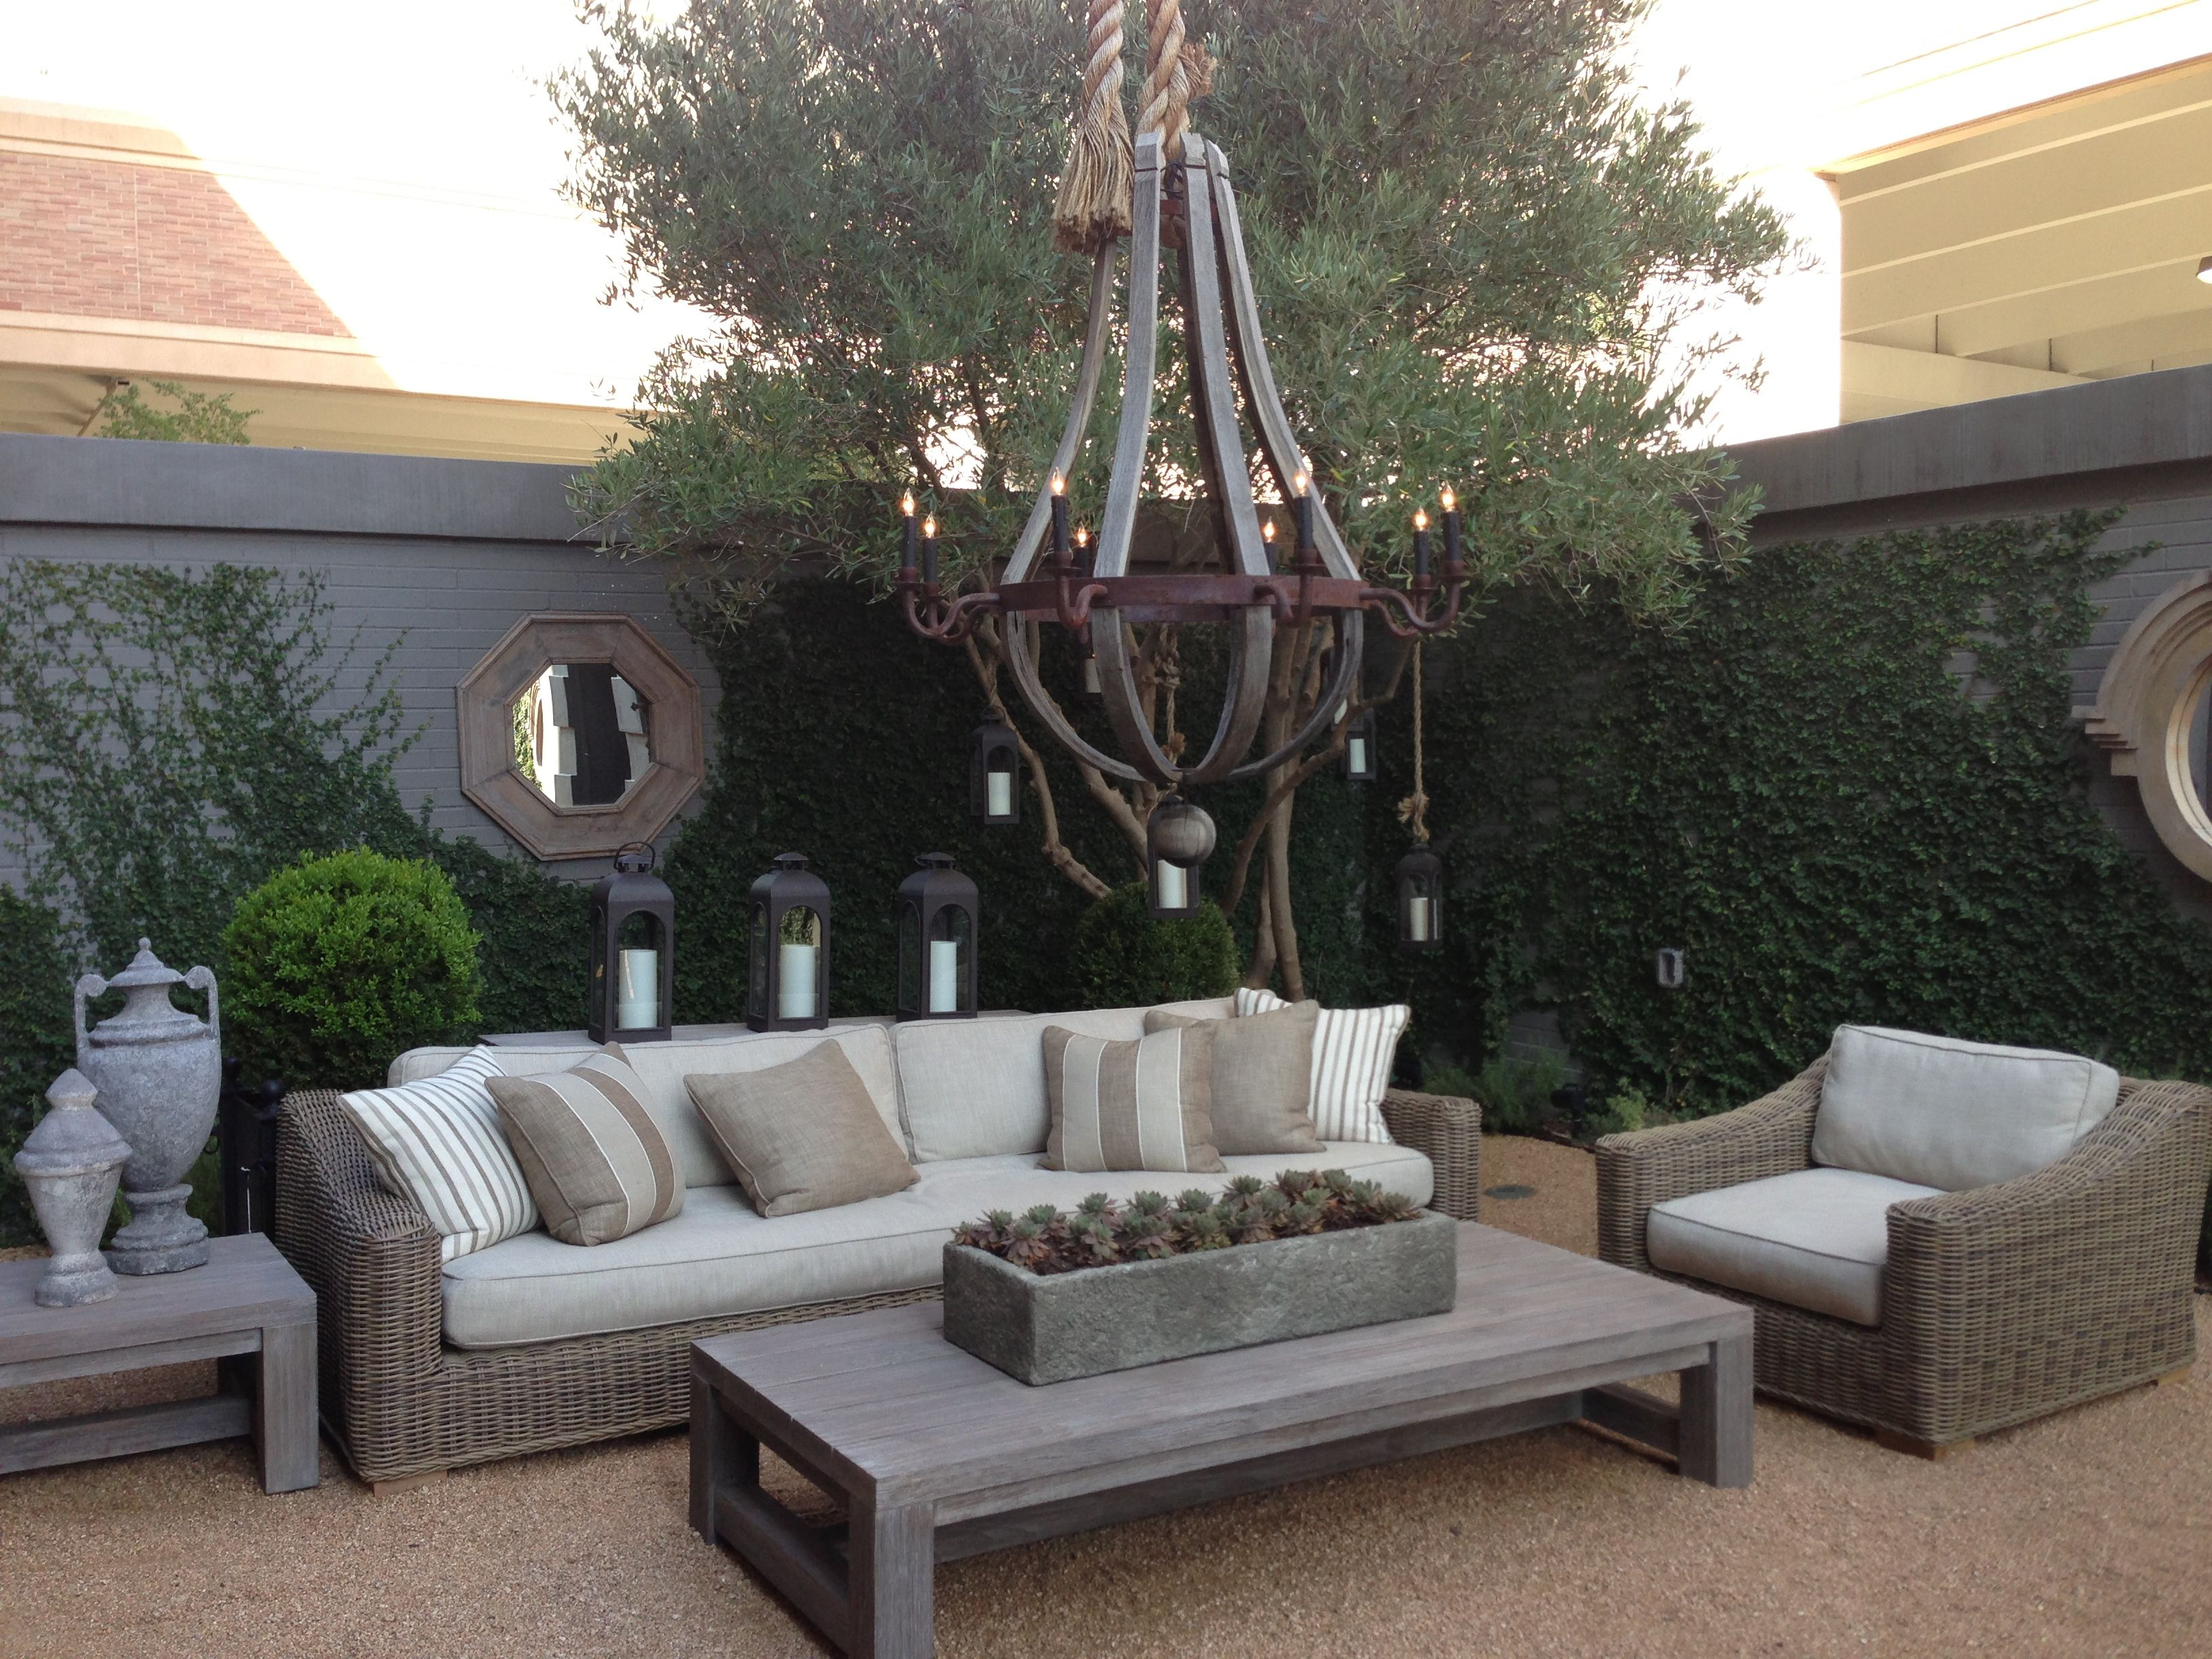 restoration hardware outdoor furniture. outdoor living by restoration hardware furniture a